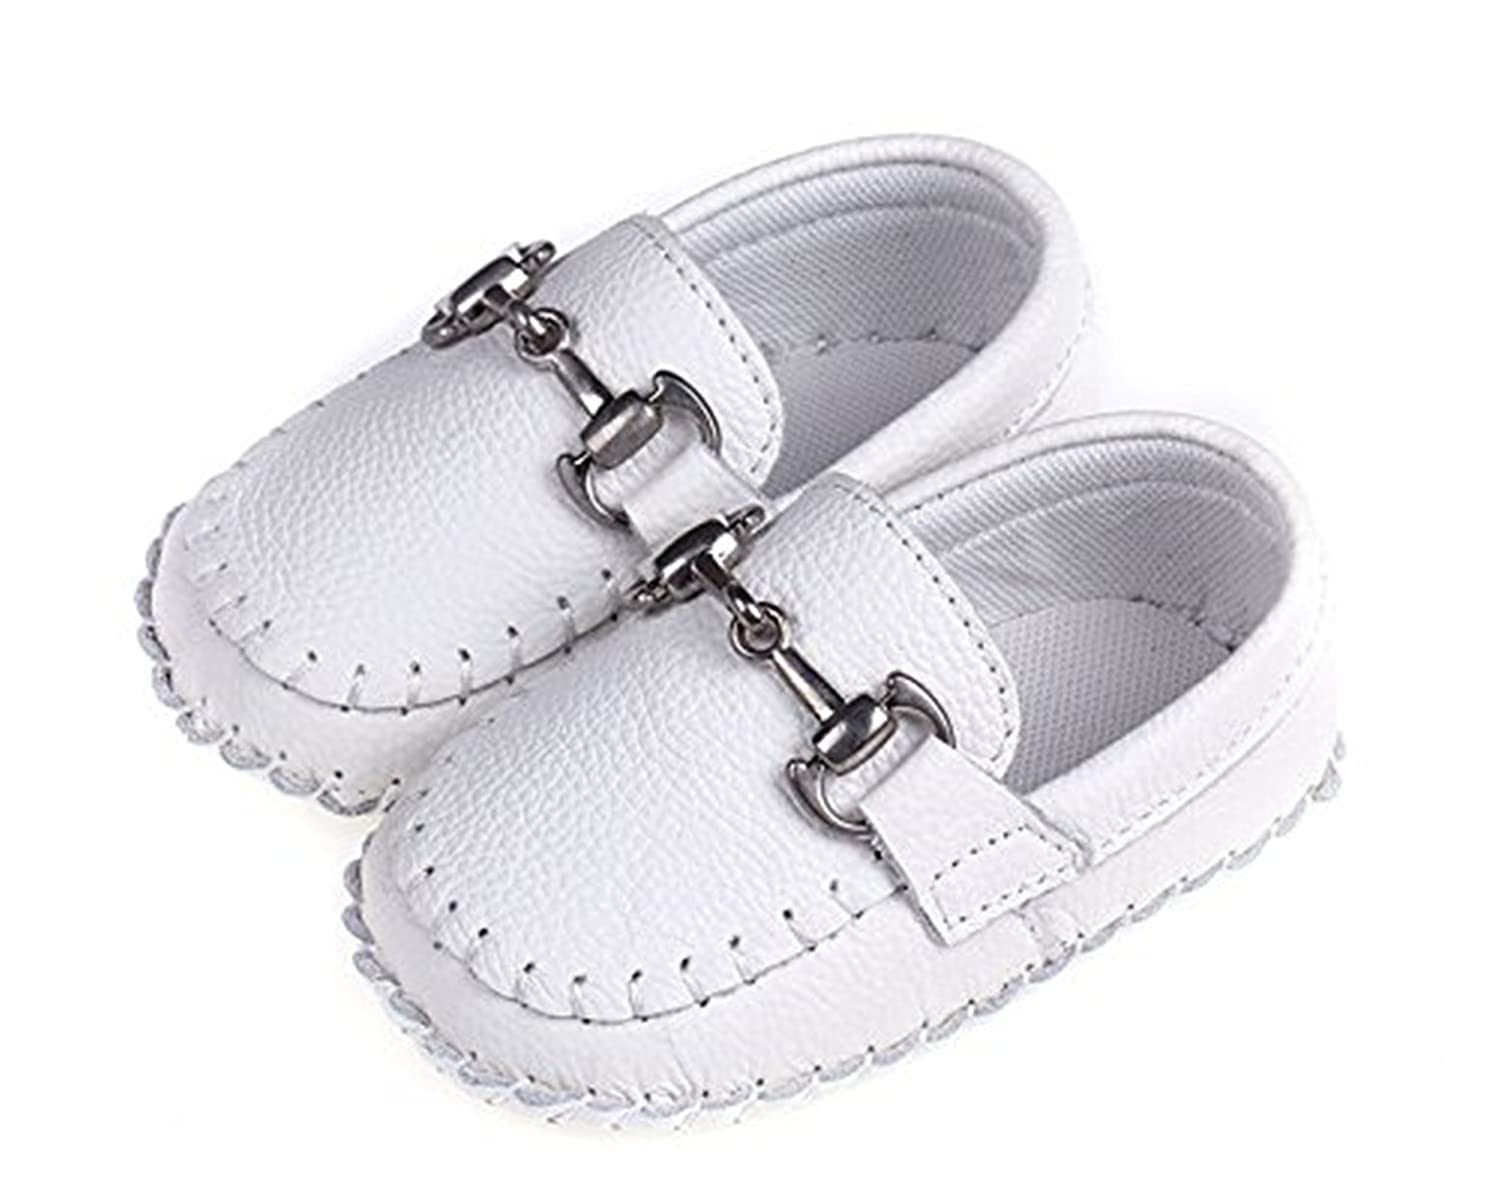 Fordbox Toddler Babys Genuine Leather Loafers Soft Sole Boat Shoe